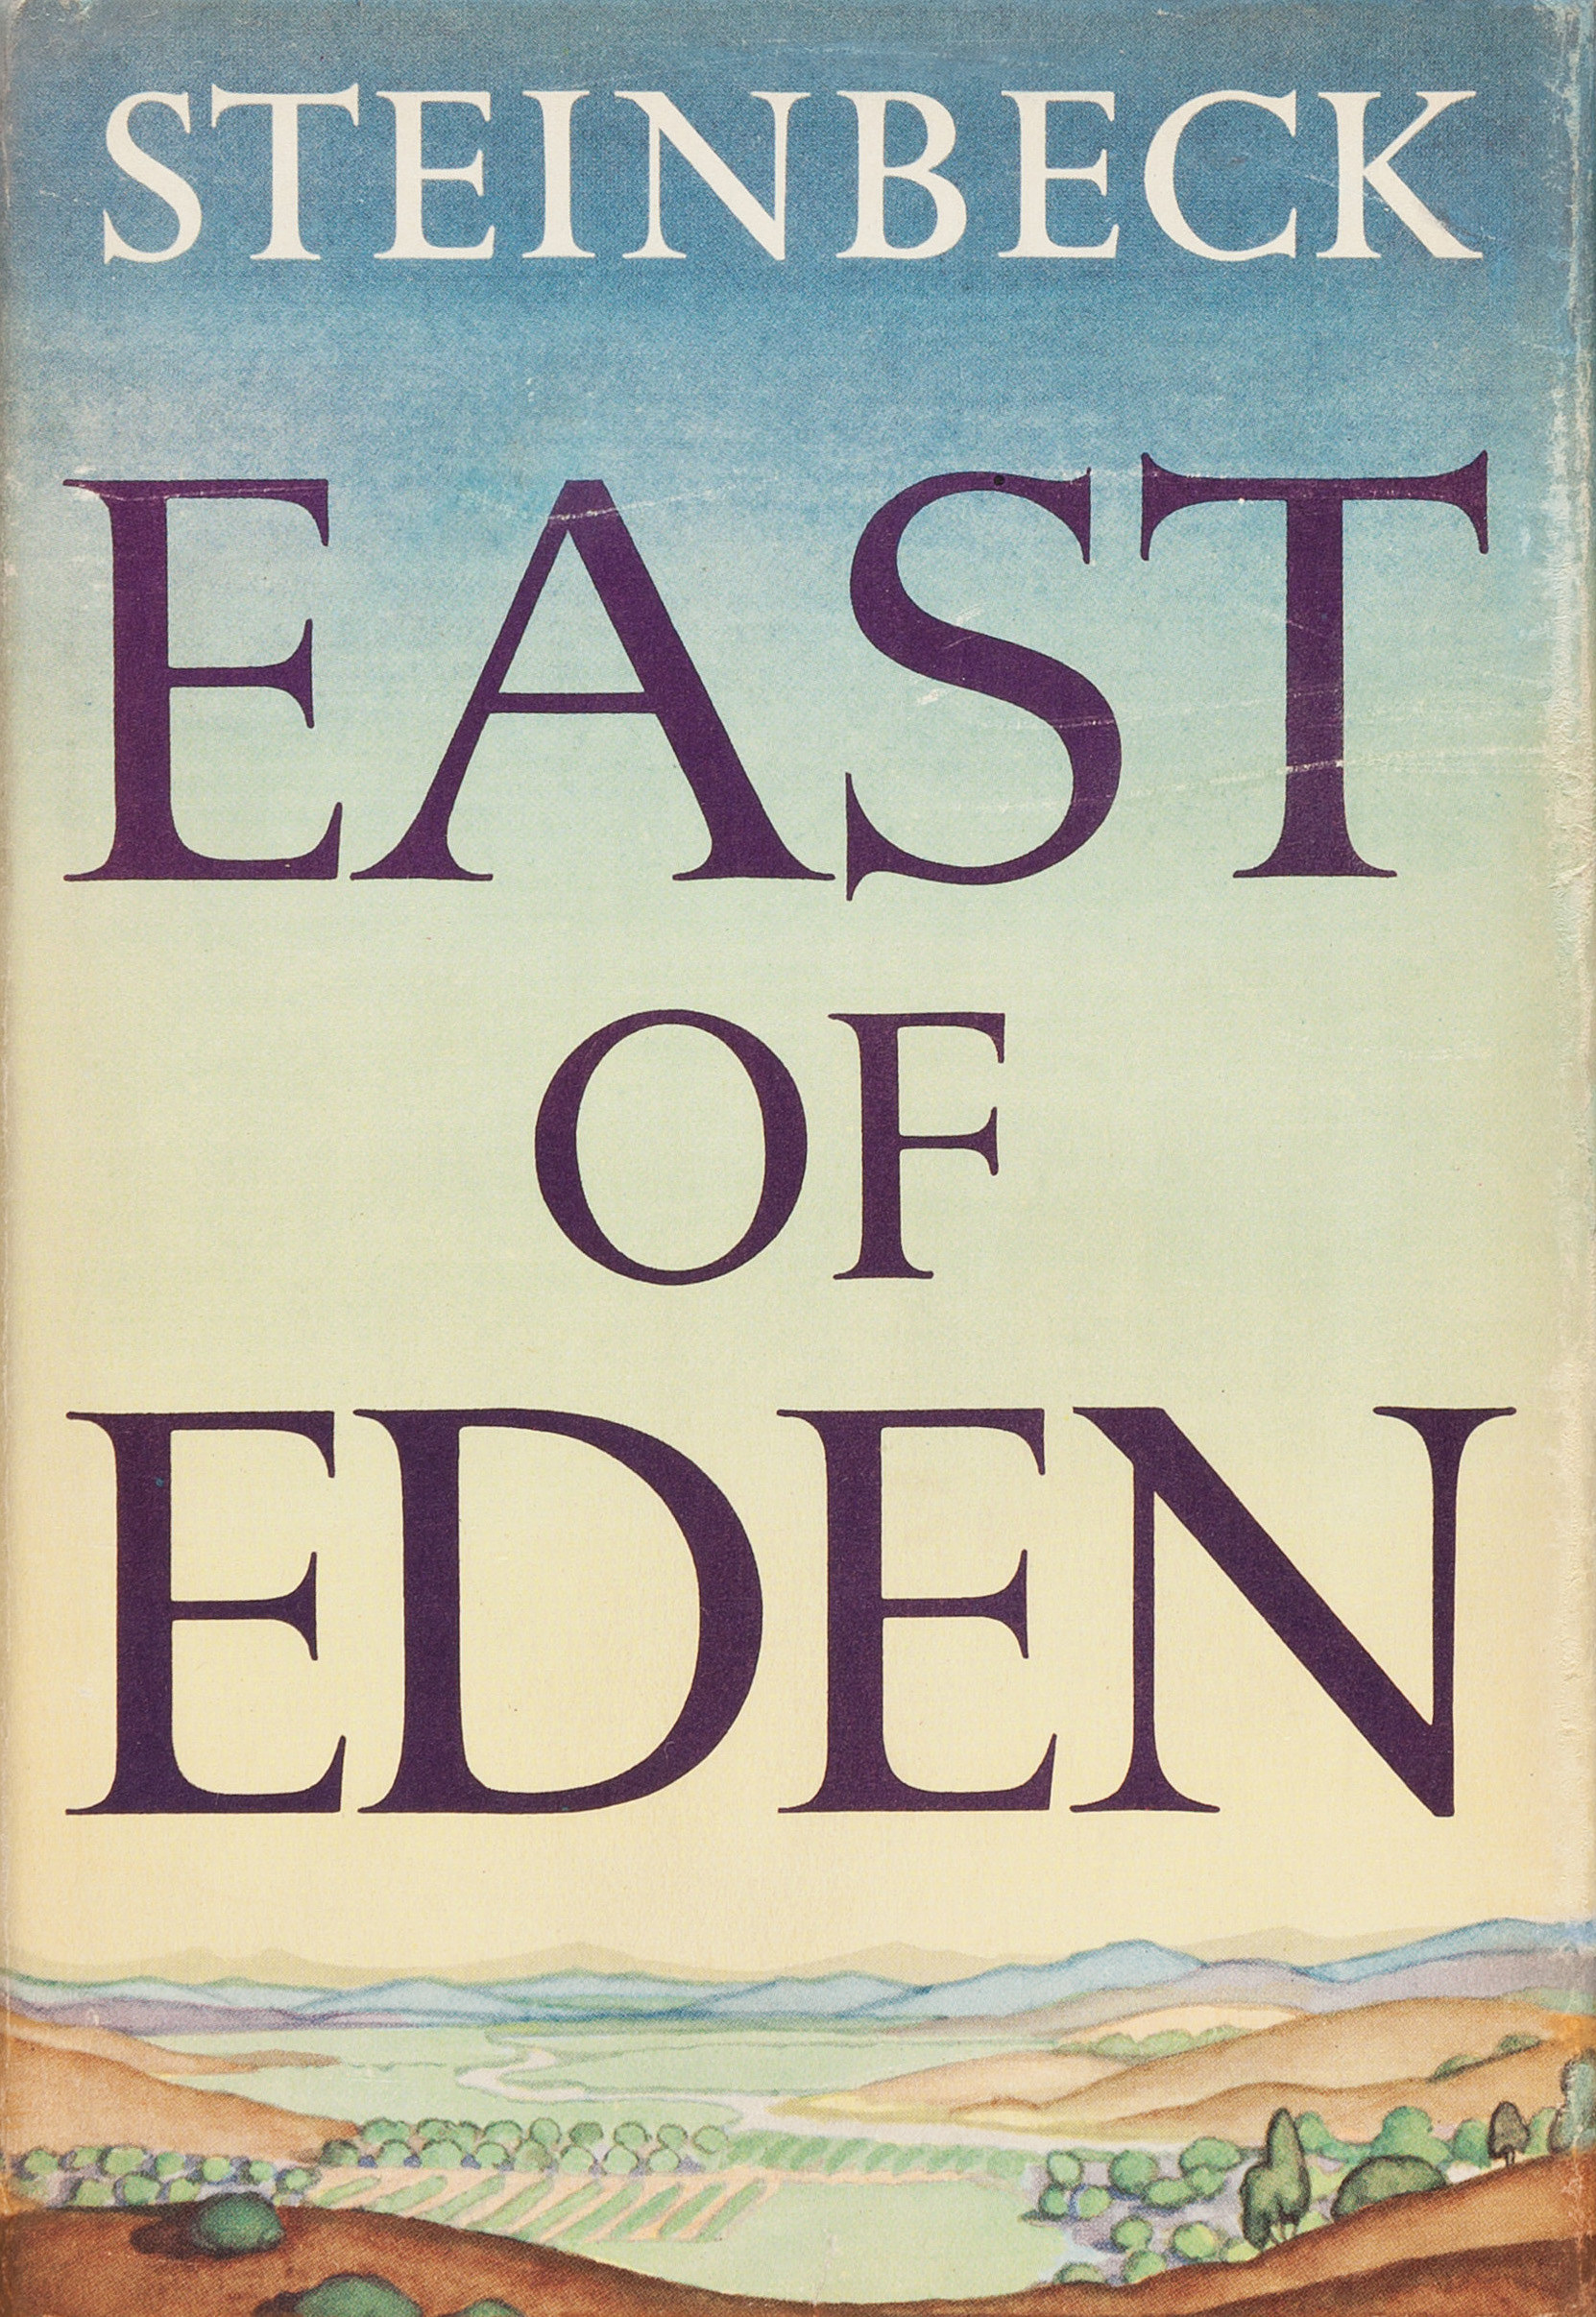 A wide angle of a landscape on the cover of East of Eden